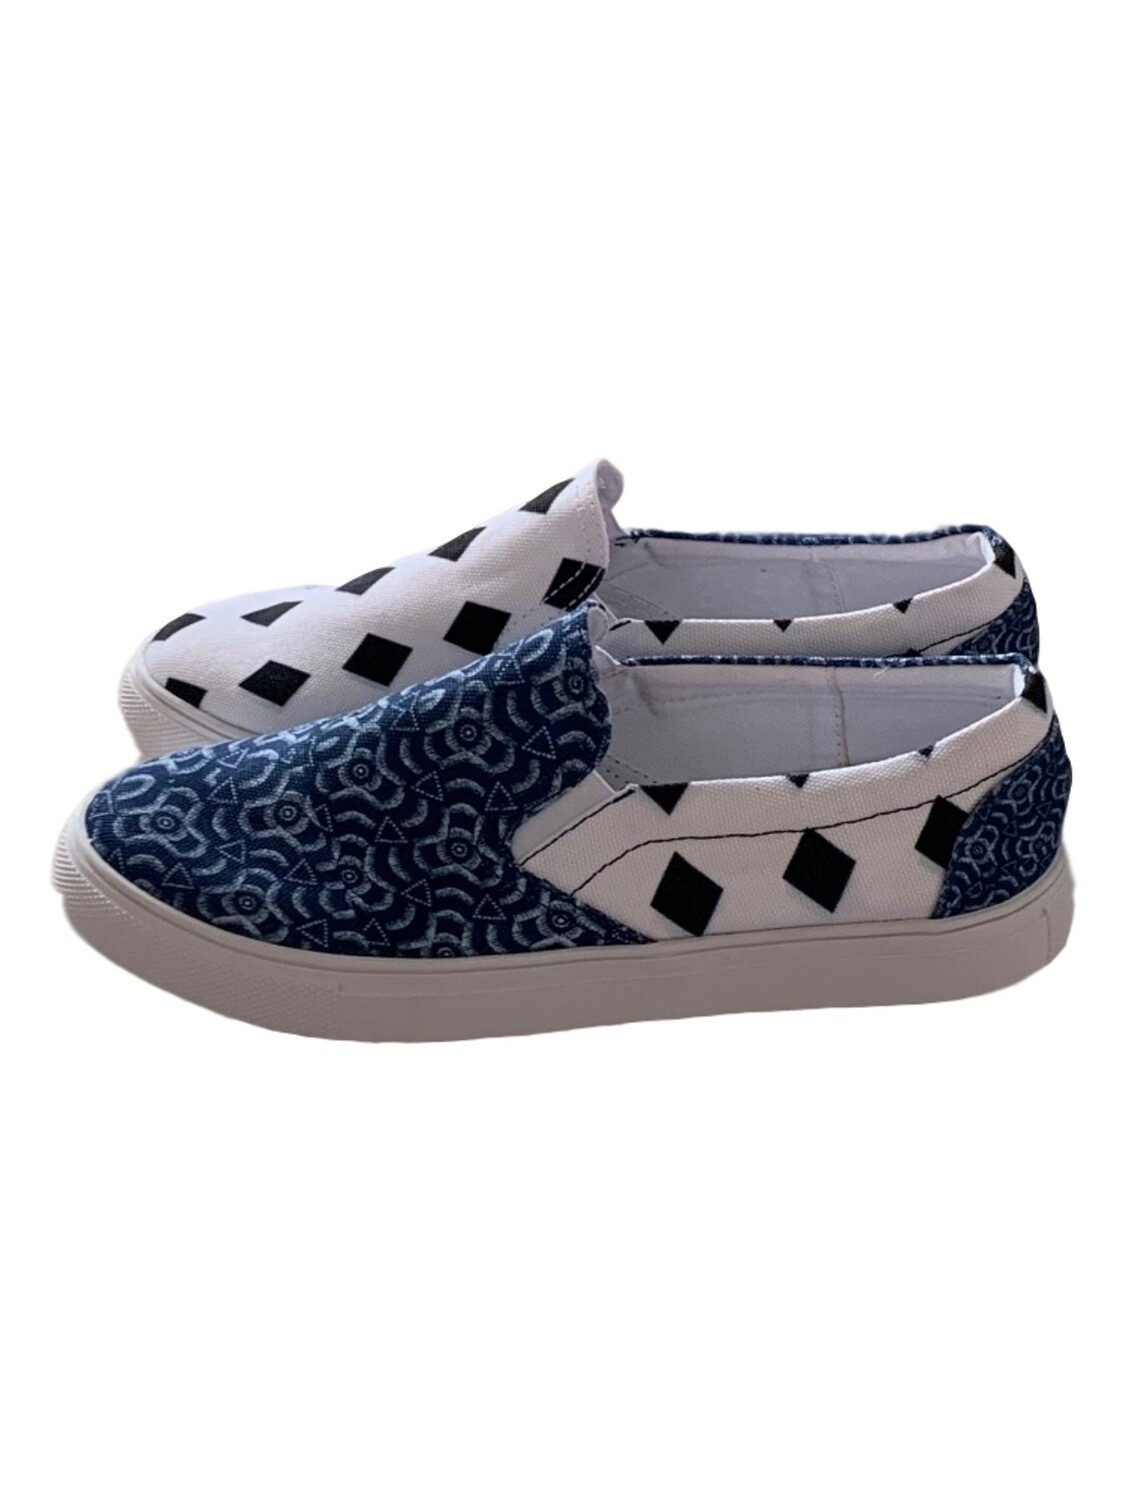 Women's Canvas Black Diamonds & African Print Slip Ons